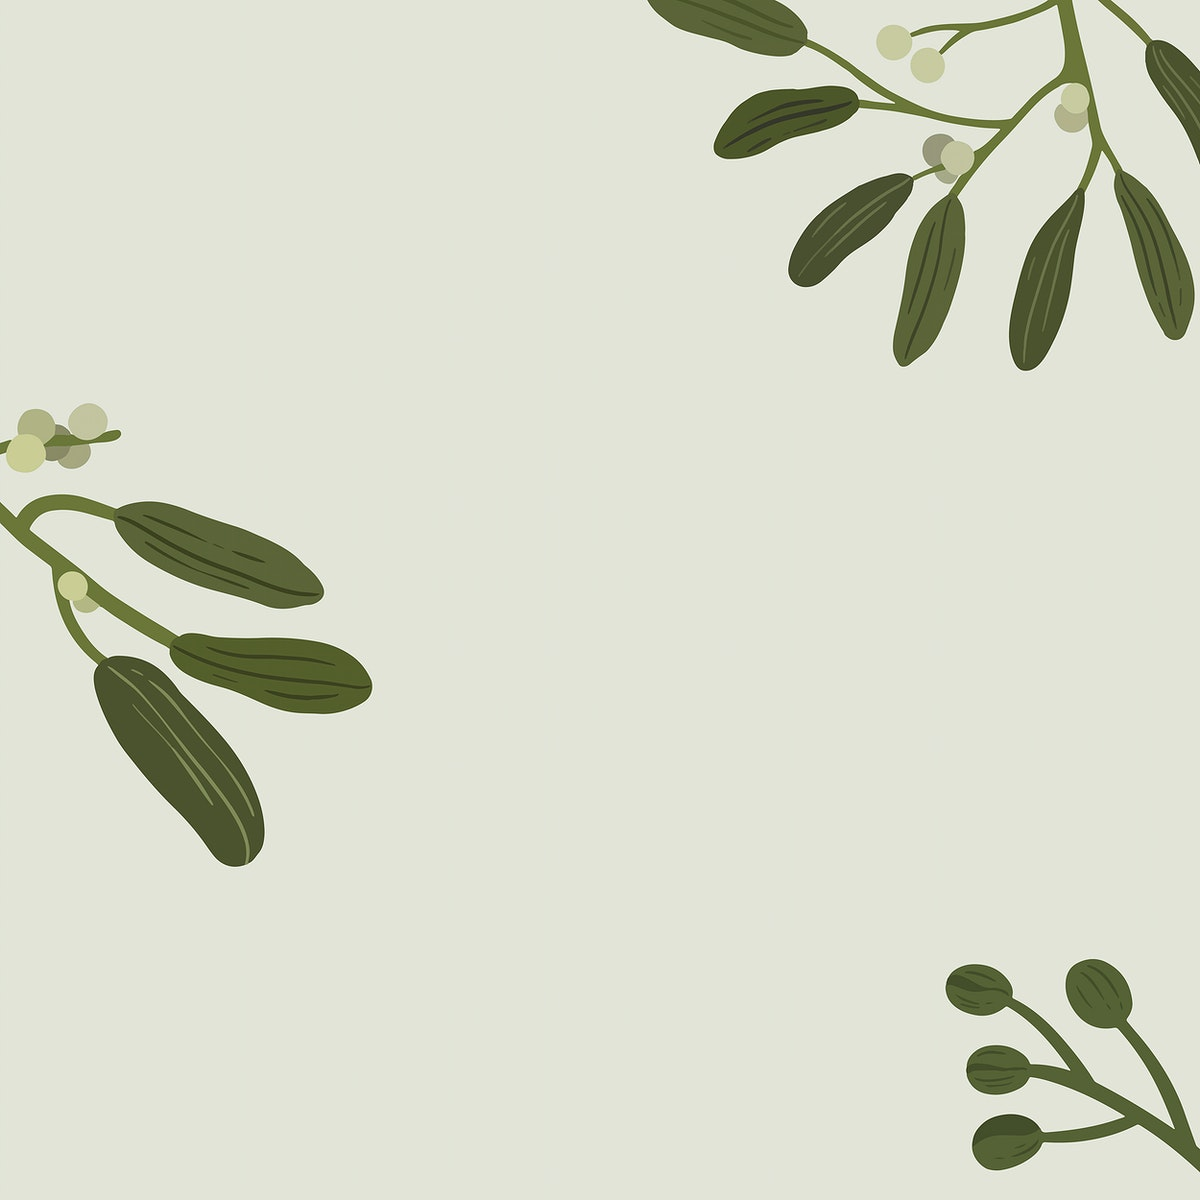 Botanical flower copy space on a gray background